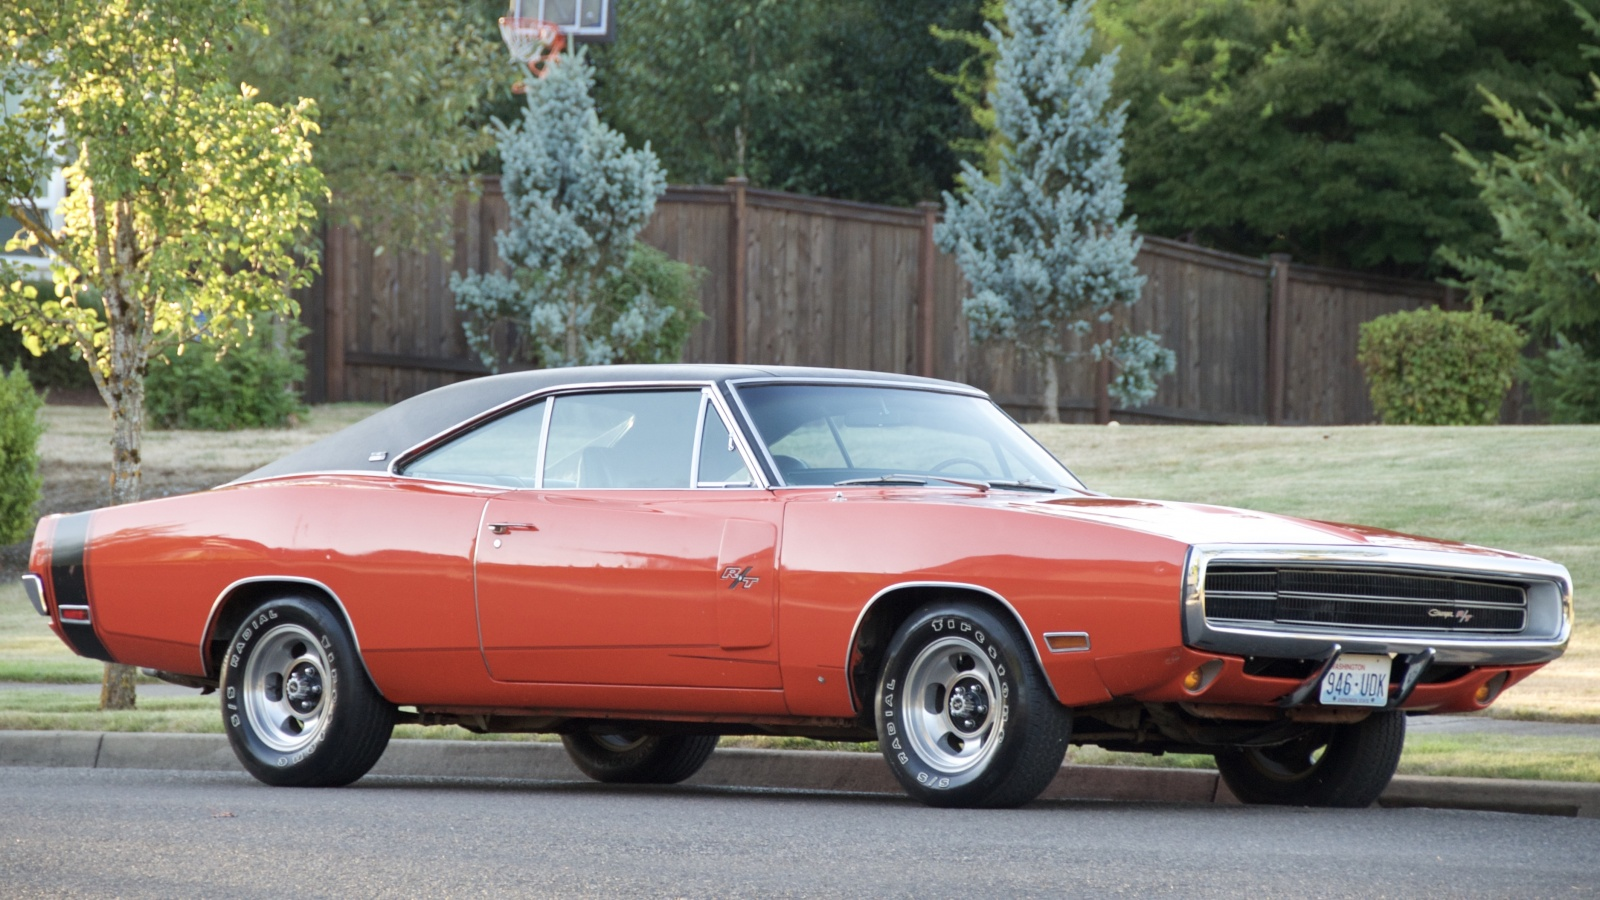 amazing survivor: 1970 dodge charger r/t